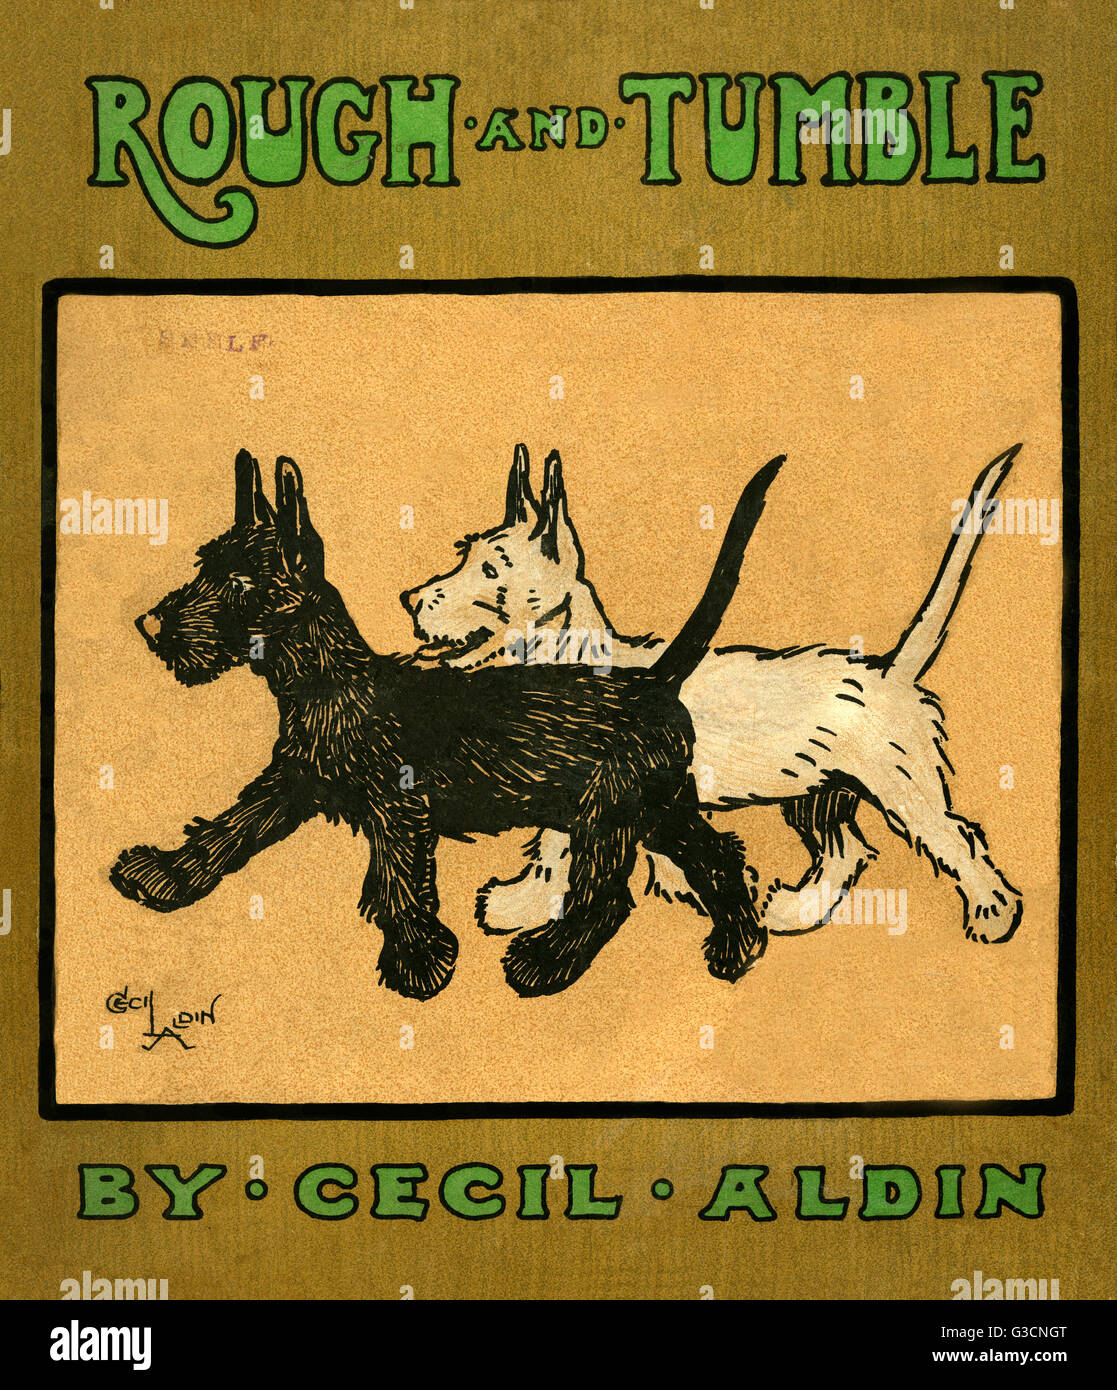 Book cover design by Cecil Aldin, Rough and Tumble, showing two Scots terriers, one white (Rough) and one black - Stock Image